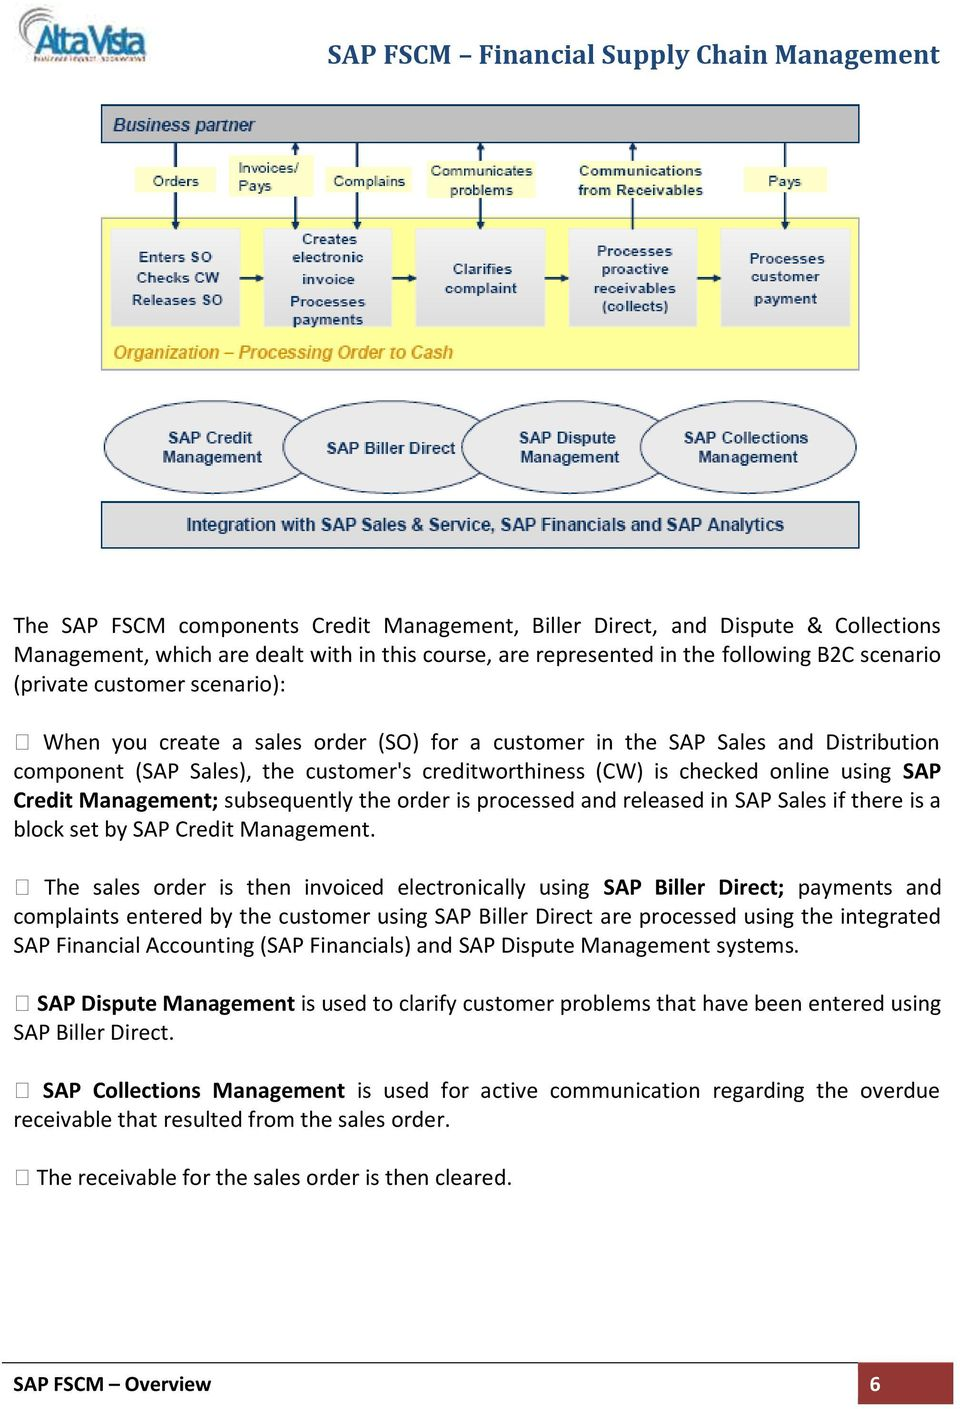 Management; subsequently the order is processed and released in SAP Sales if there is a block set by SAP Credit Management.